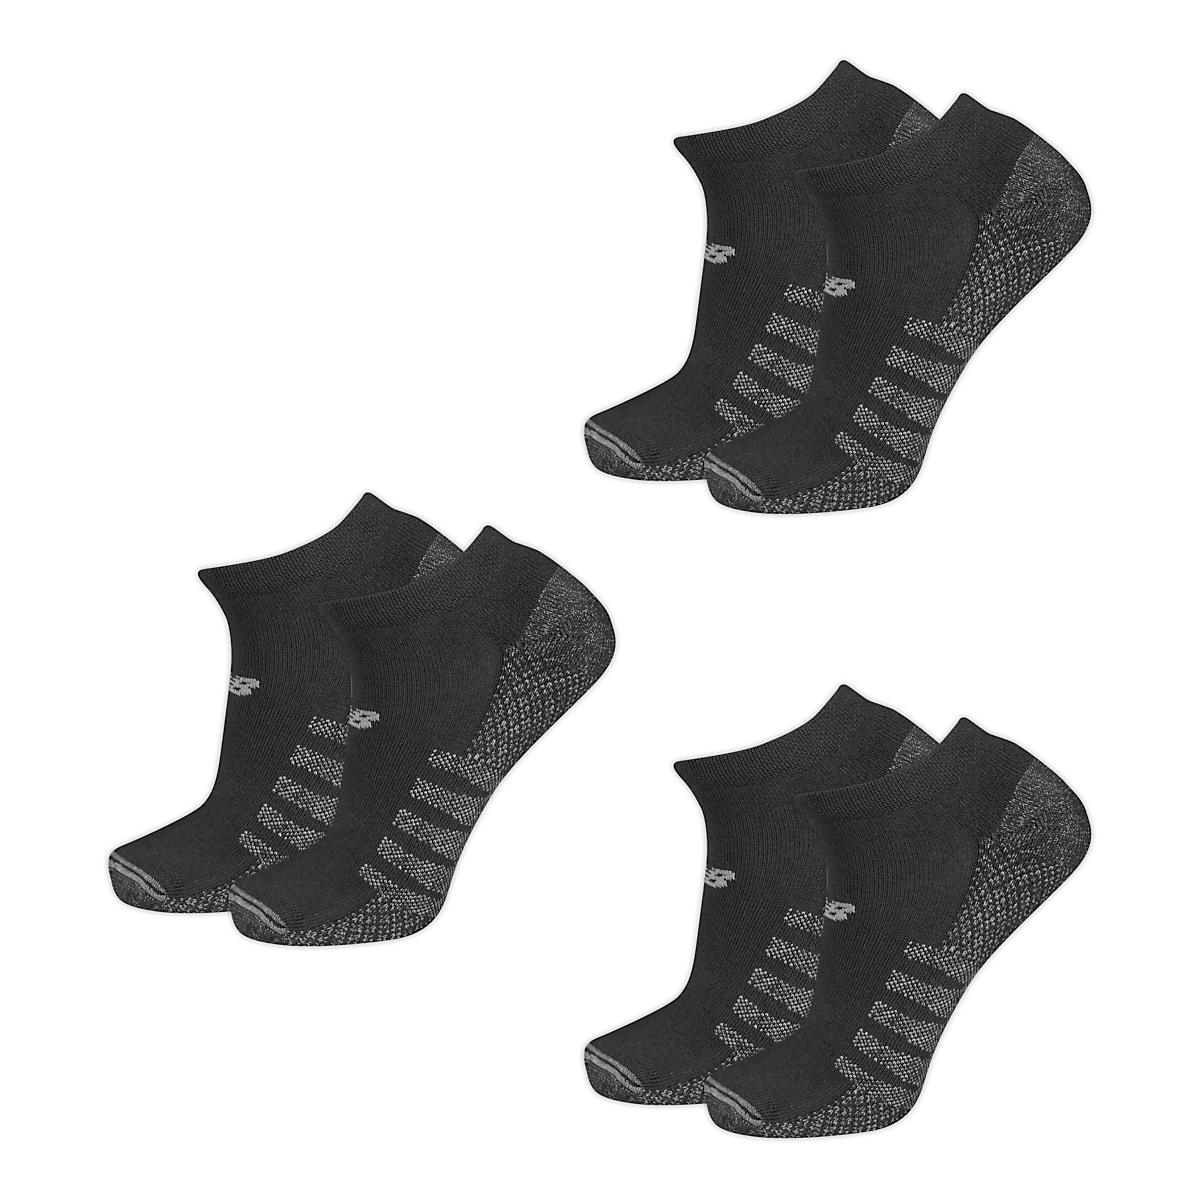 02046100eaaa1 New Balance Technical Elite Coolmax No Show 6 Pack Socks at Road Runner  Sports